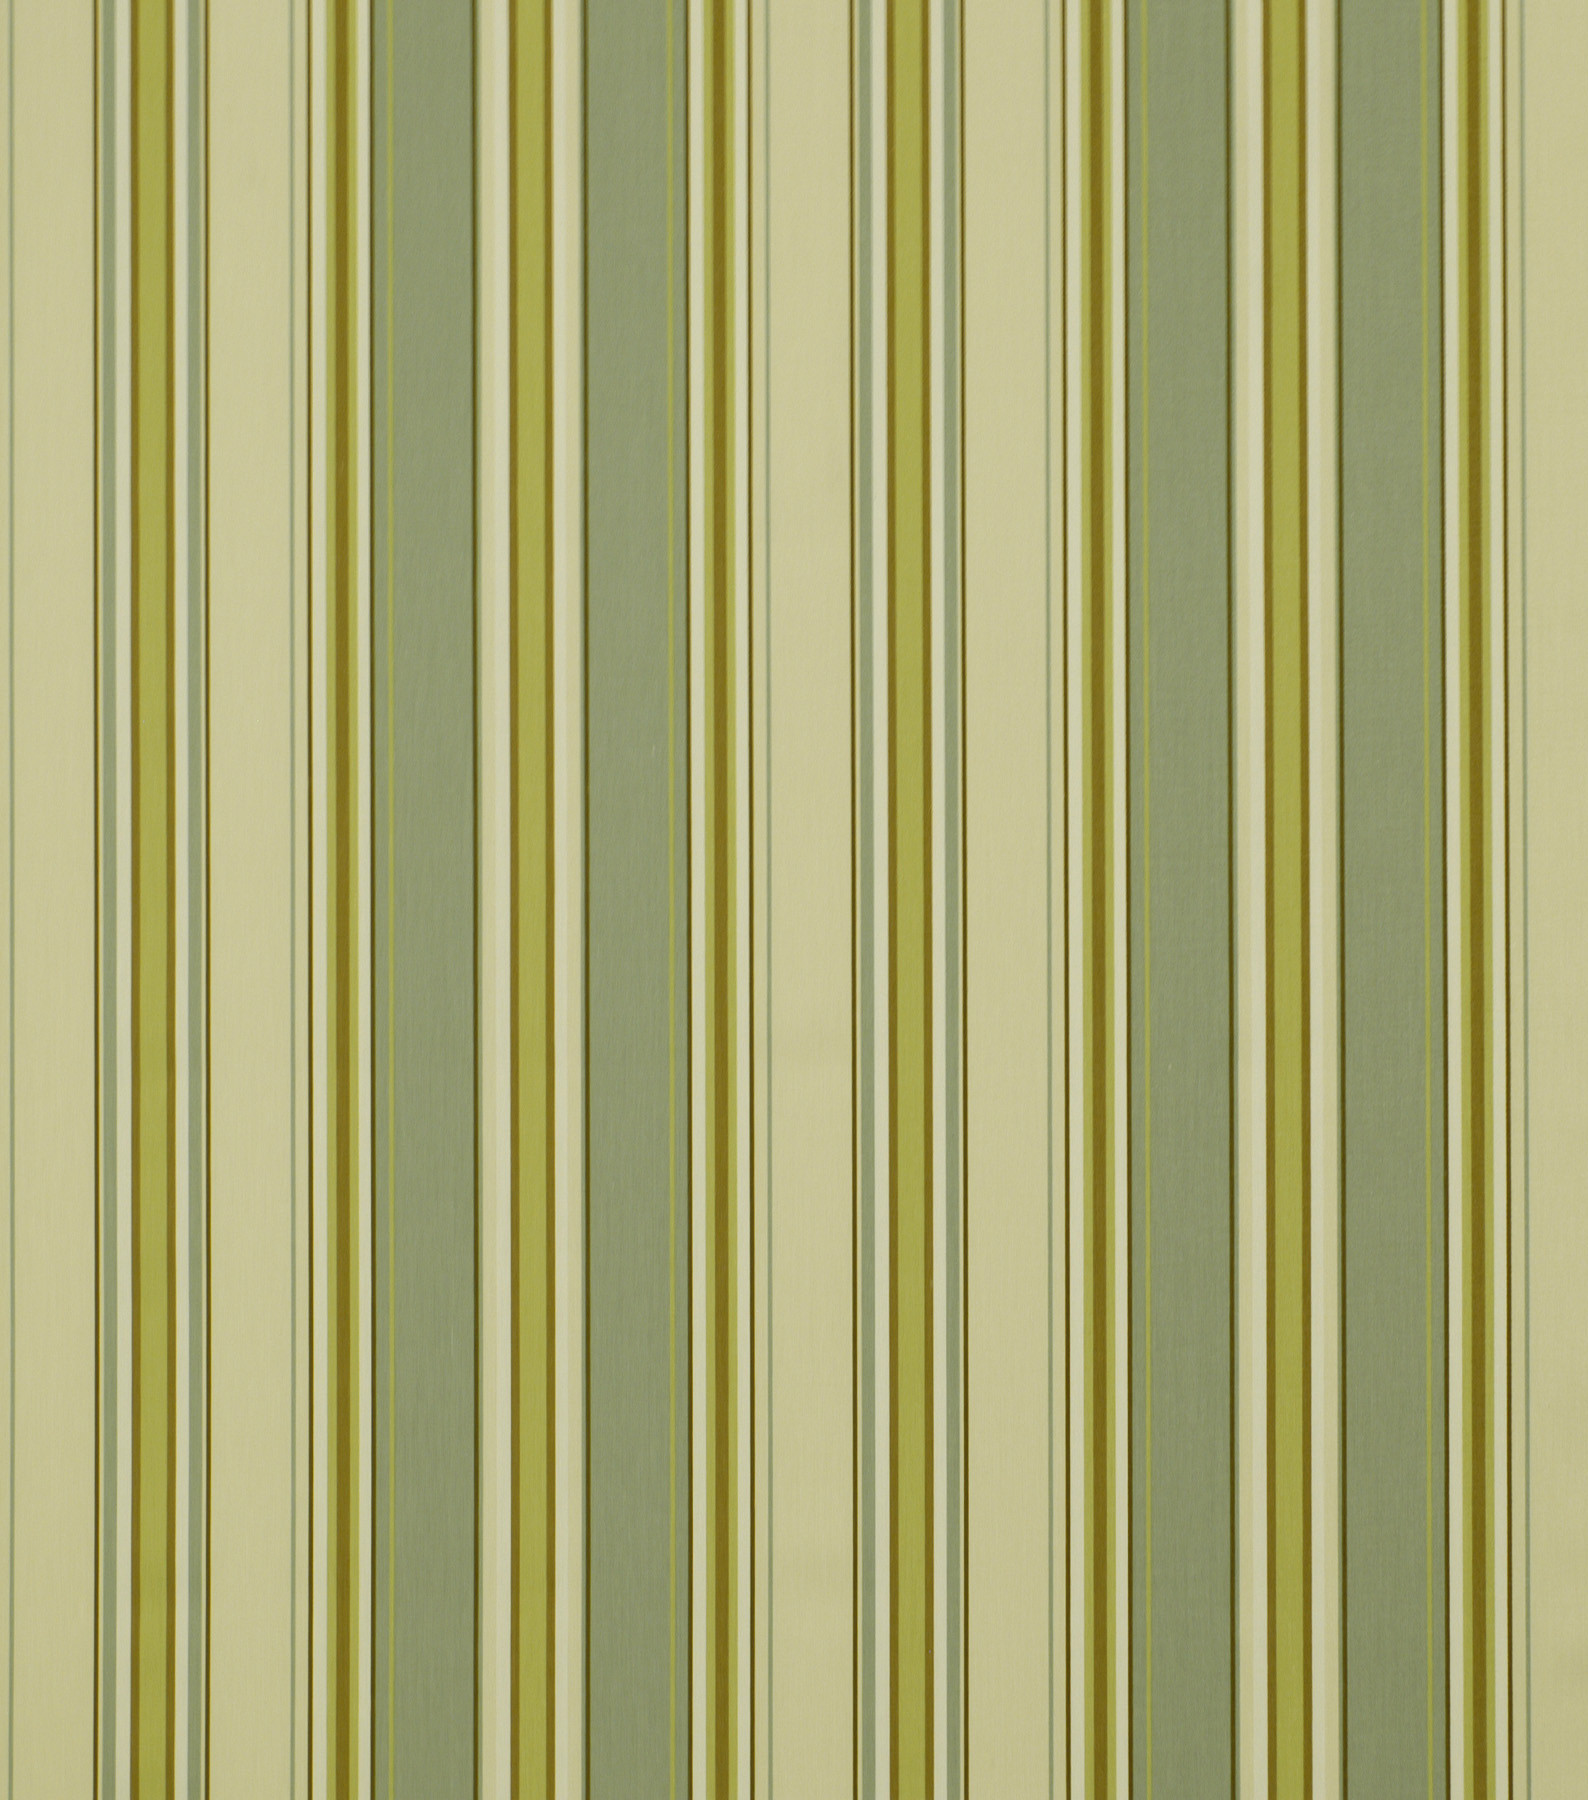 Home Decor 8\u0022x8\u0022 Fabric Swatch-Print Fabric Robert Allen Freewater Capri